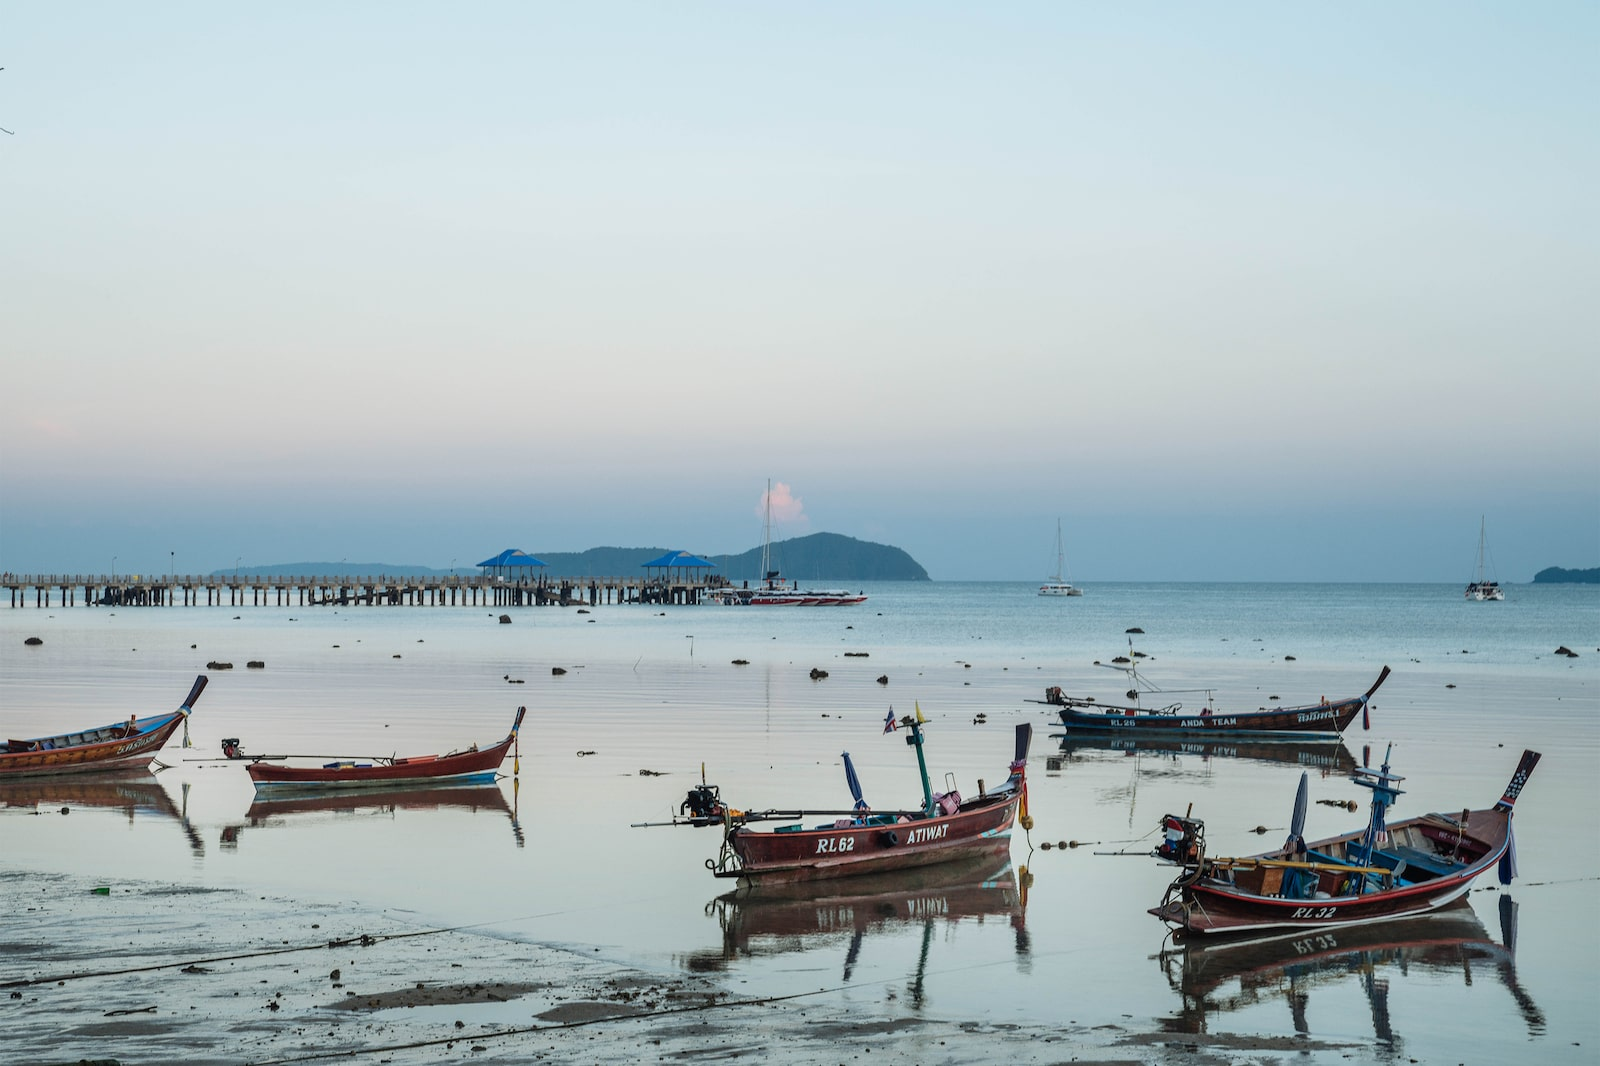 Multiple sampans resting by Phuket sea with an island in the distance